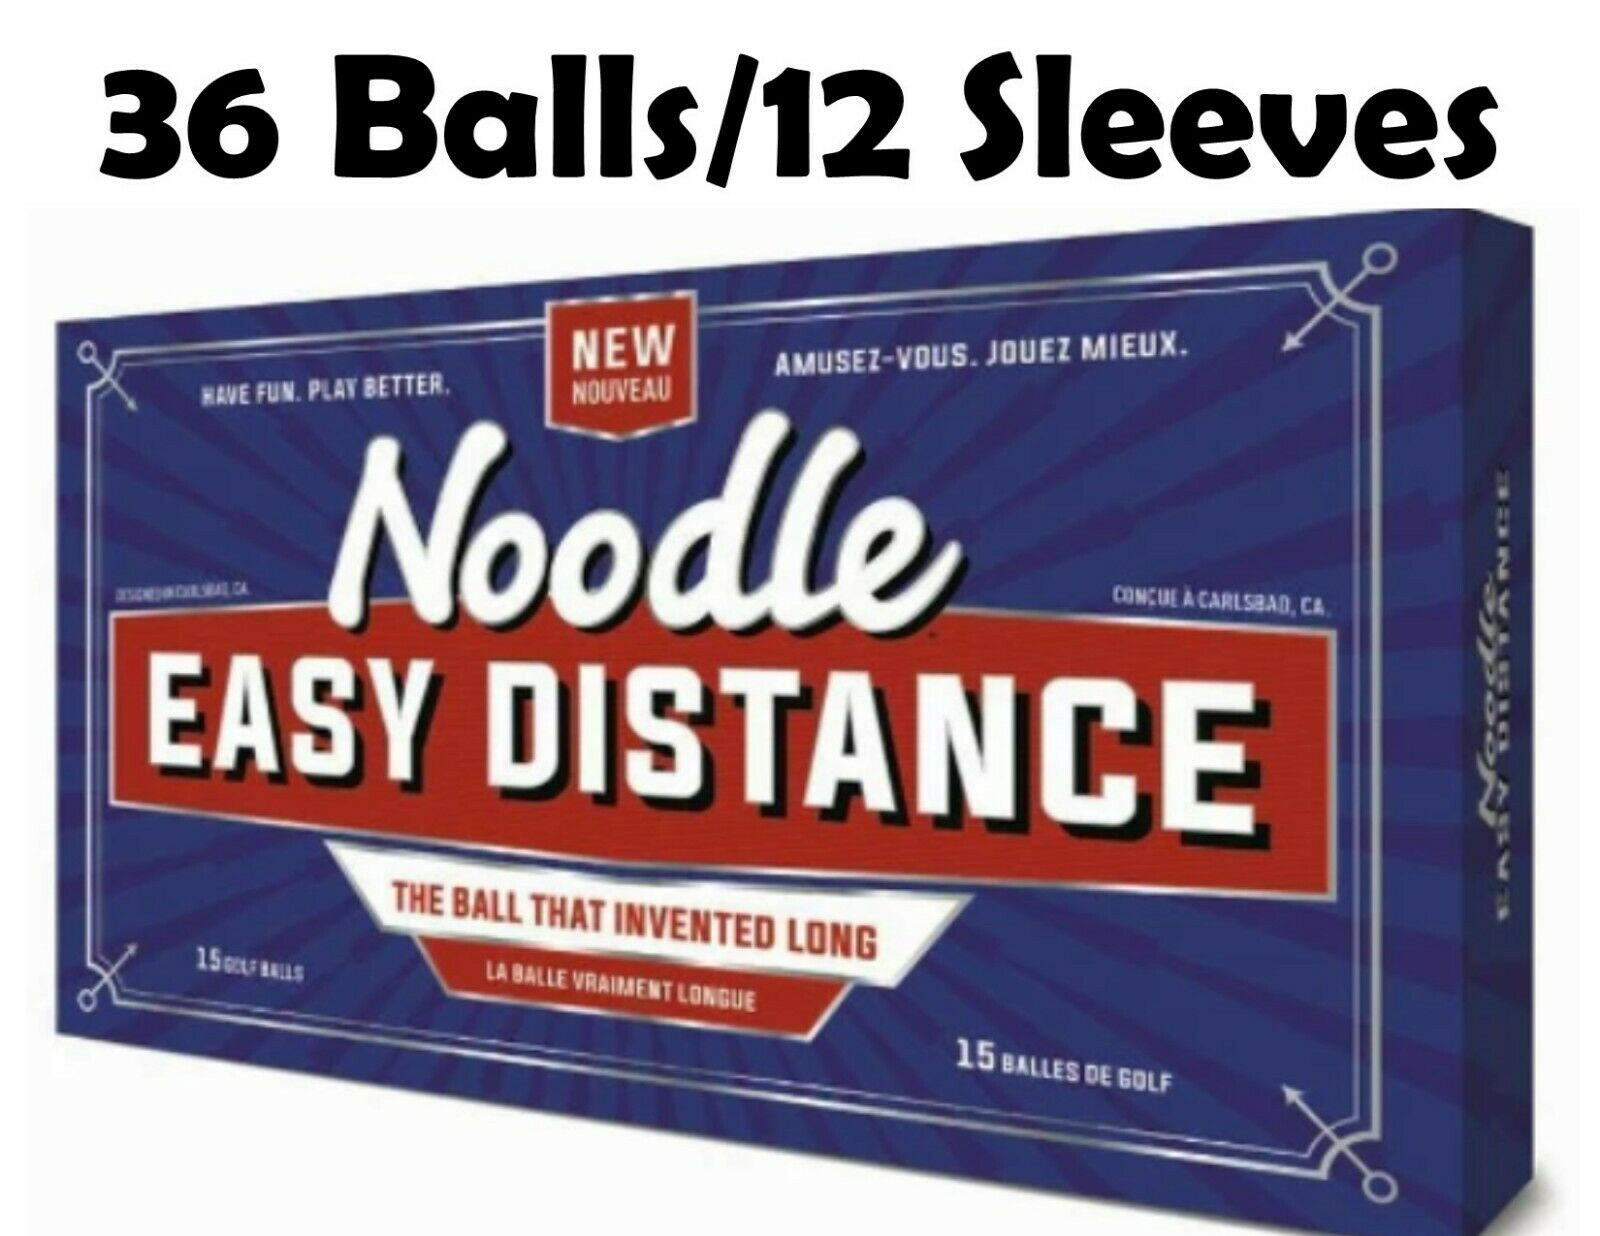 Noodle Easy Distance Golf Balls TaylorMade  ~12 Sleeves ~ 36